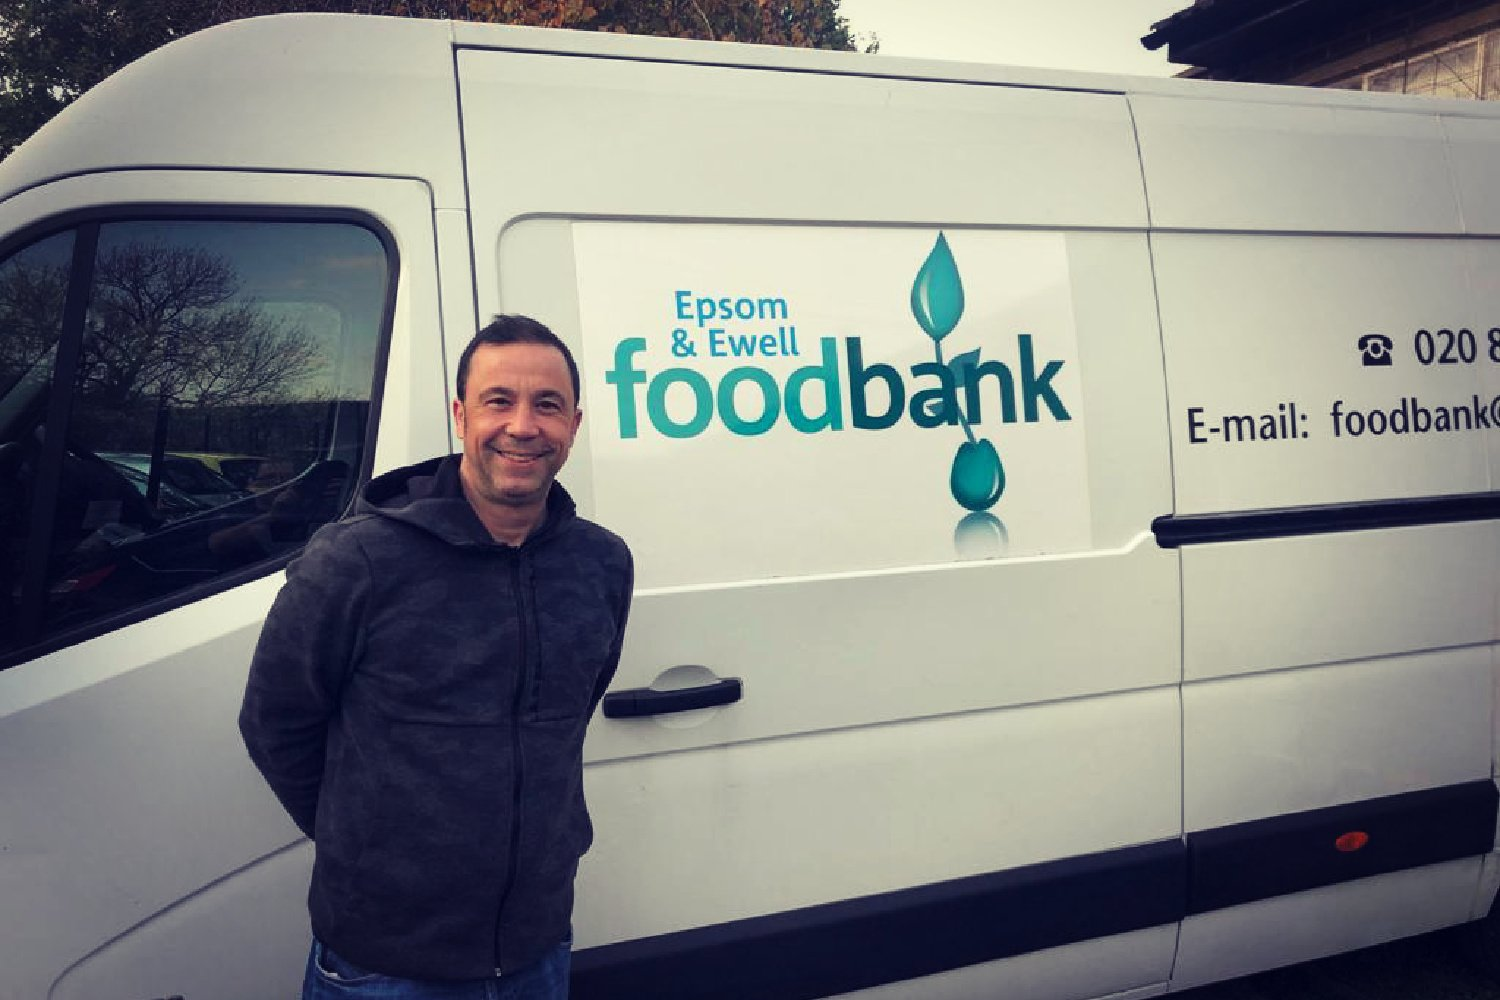 THE EPSOM AND EWELL FOODBANK NOT JUST FOR FOOD…